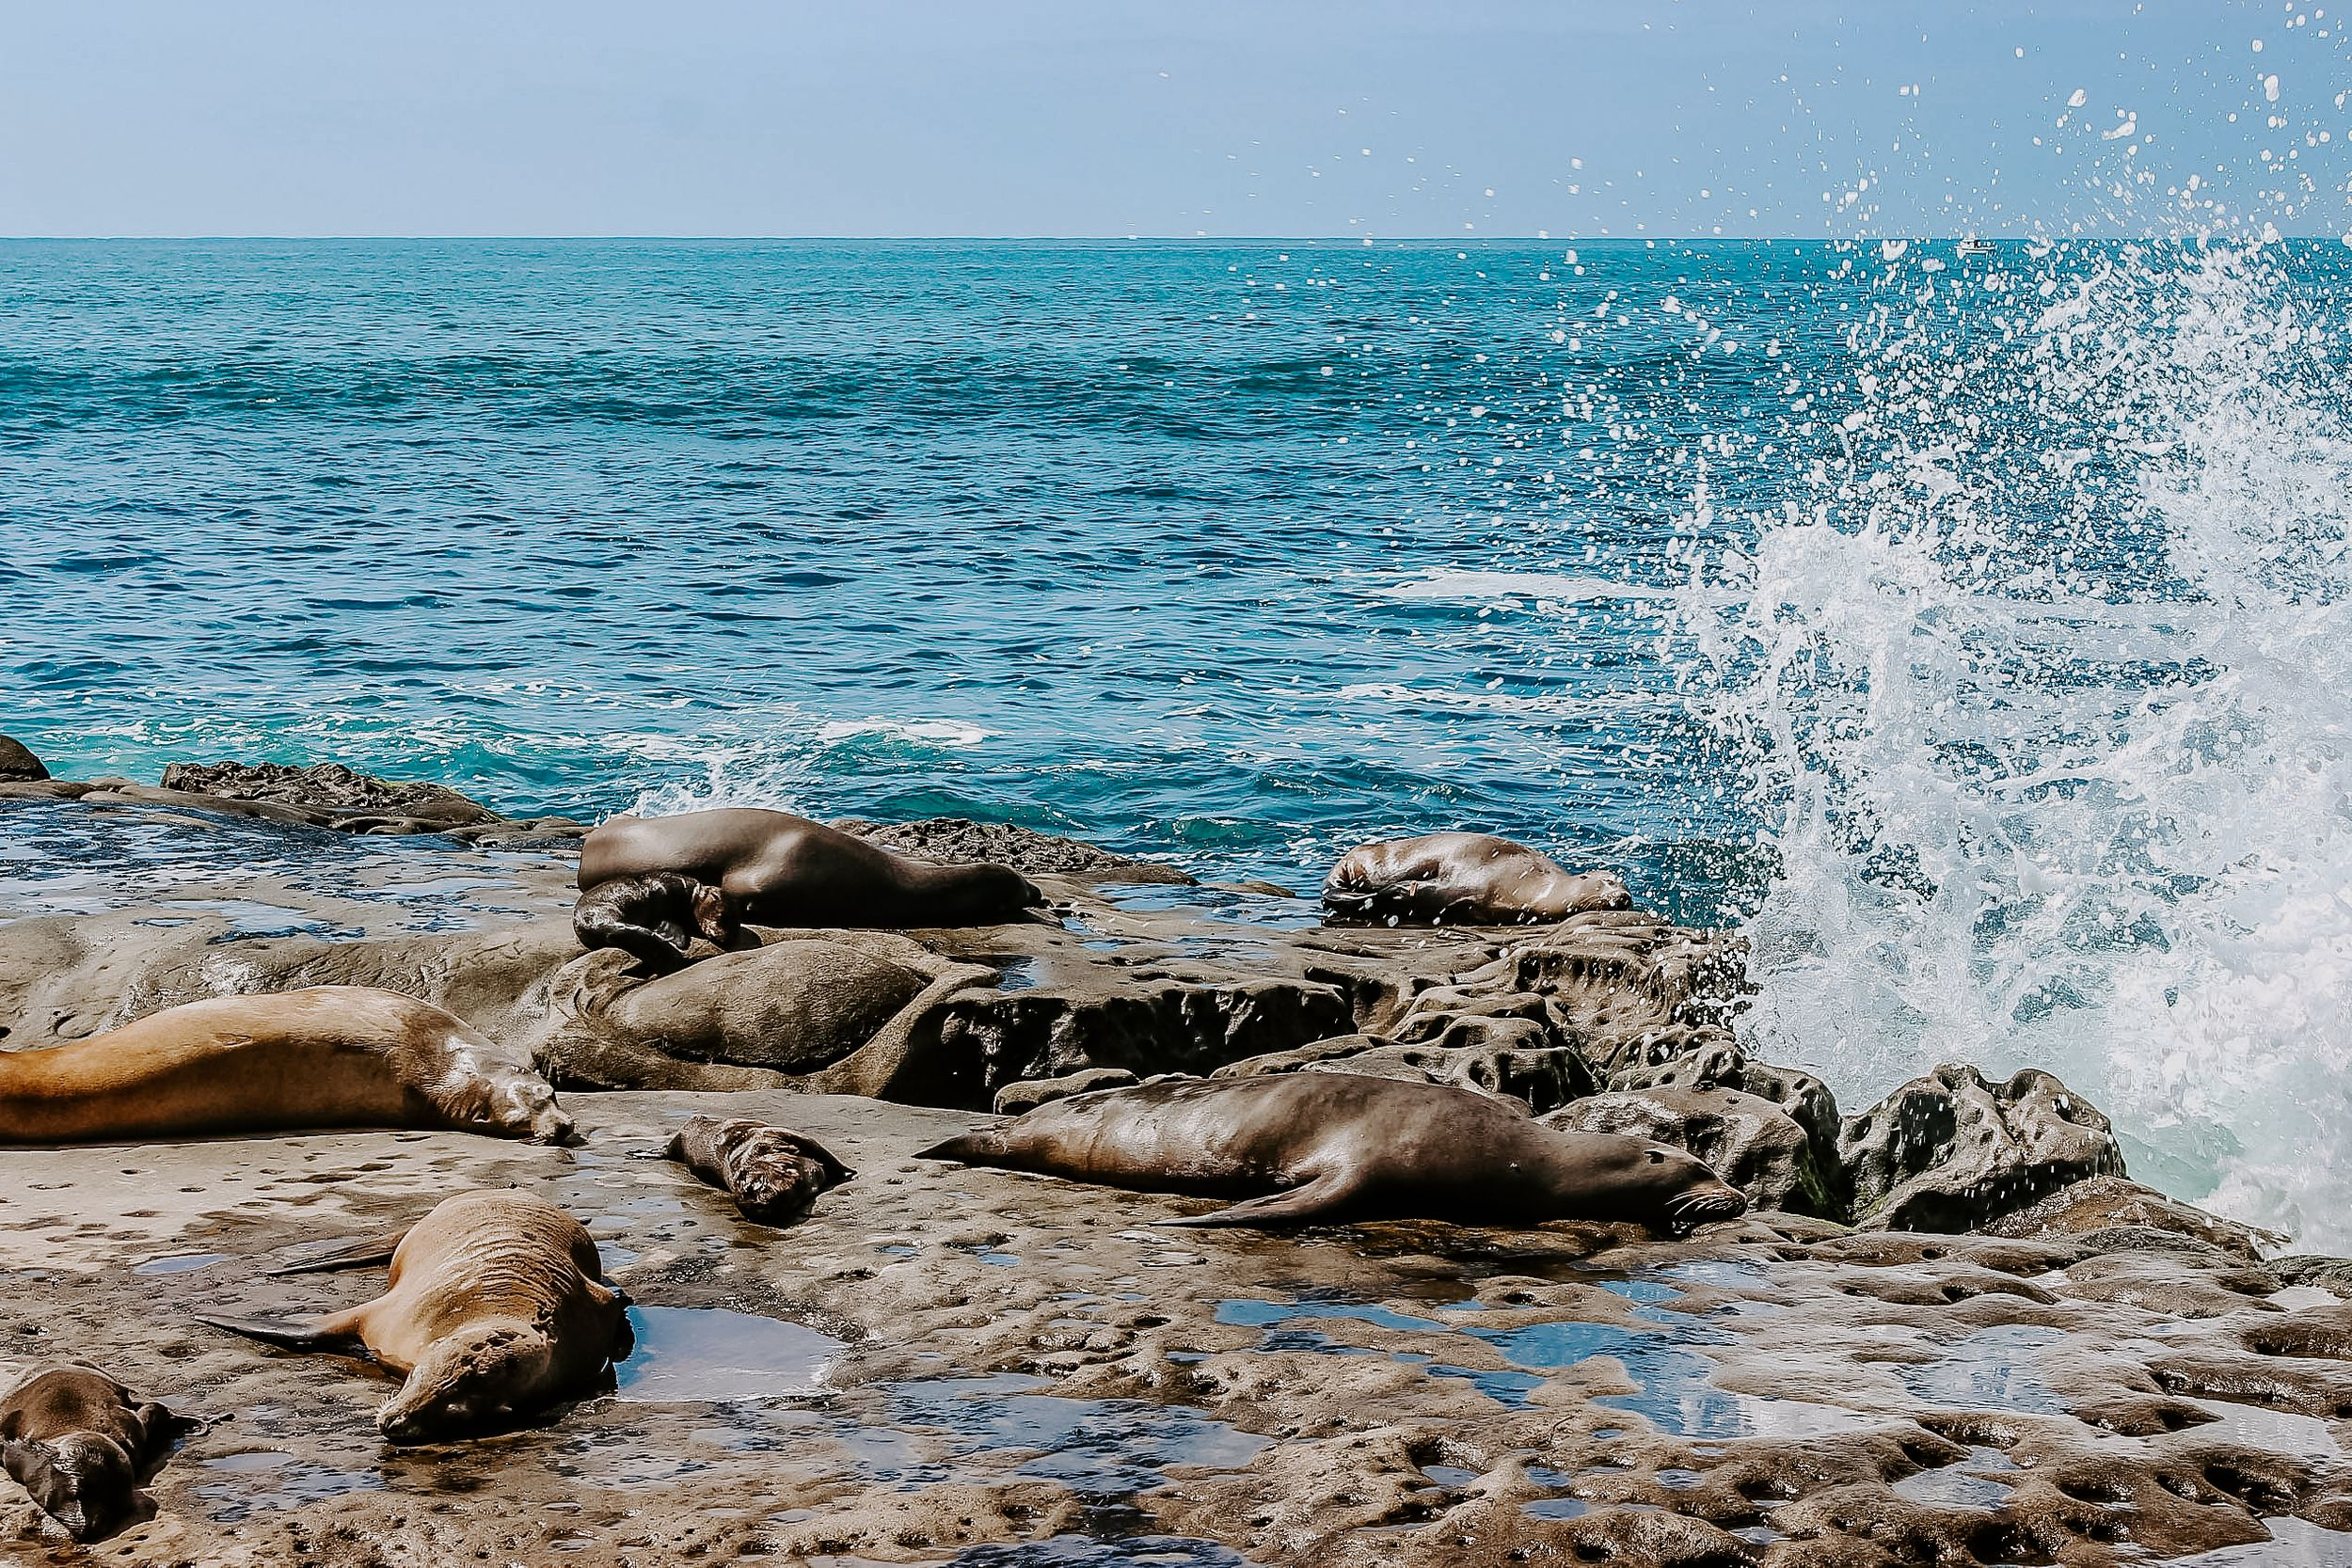 seals sitting on rocks while water splashes up near them in San Diego, adventure elopement photographer